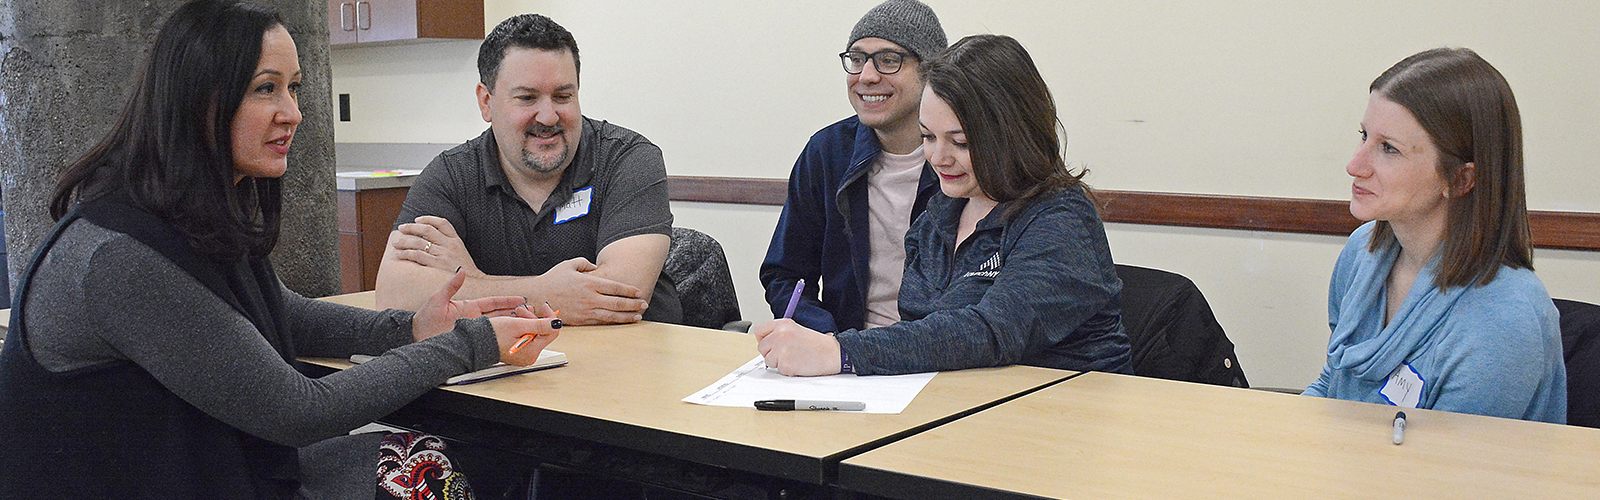 Hadar Borden with WNY Prosperity Fellowship program alumni Matt Coia, Phil Schneider, Celine Keefe, and Amy Monin. Fellows are given scholarships and internships to assist them in gaining experience in their intended professions.